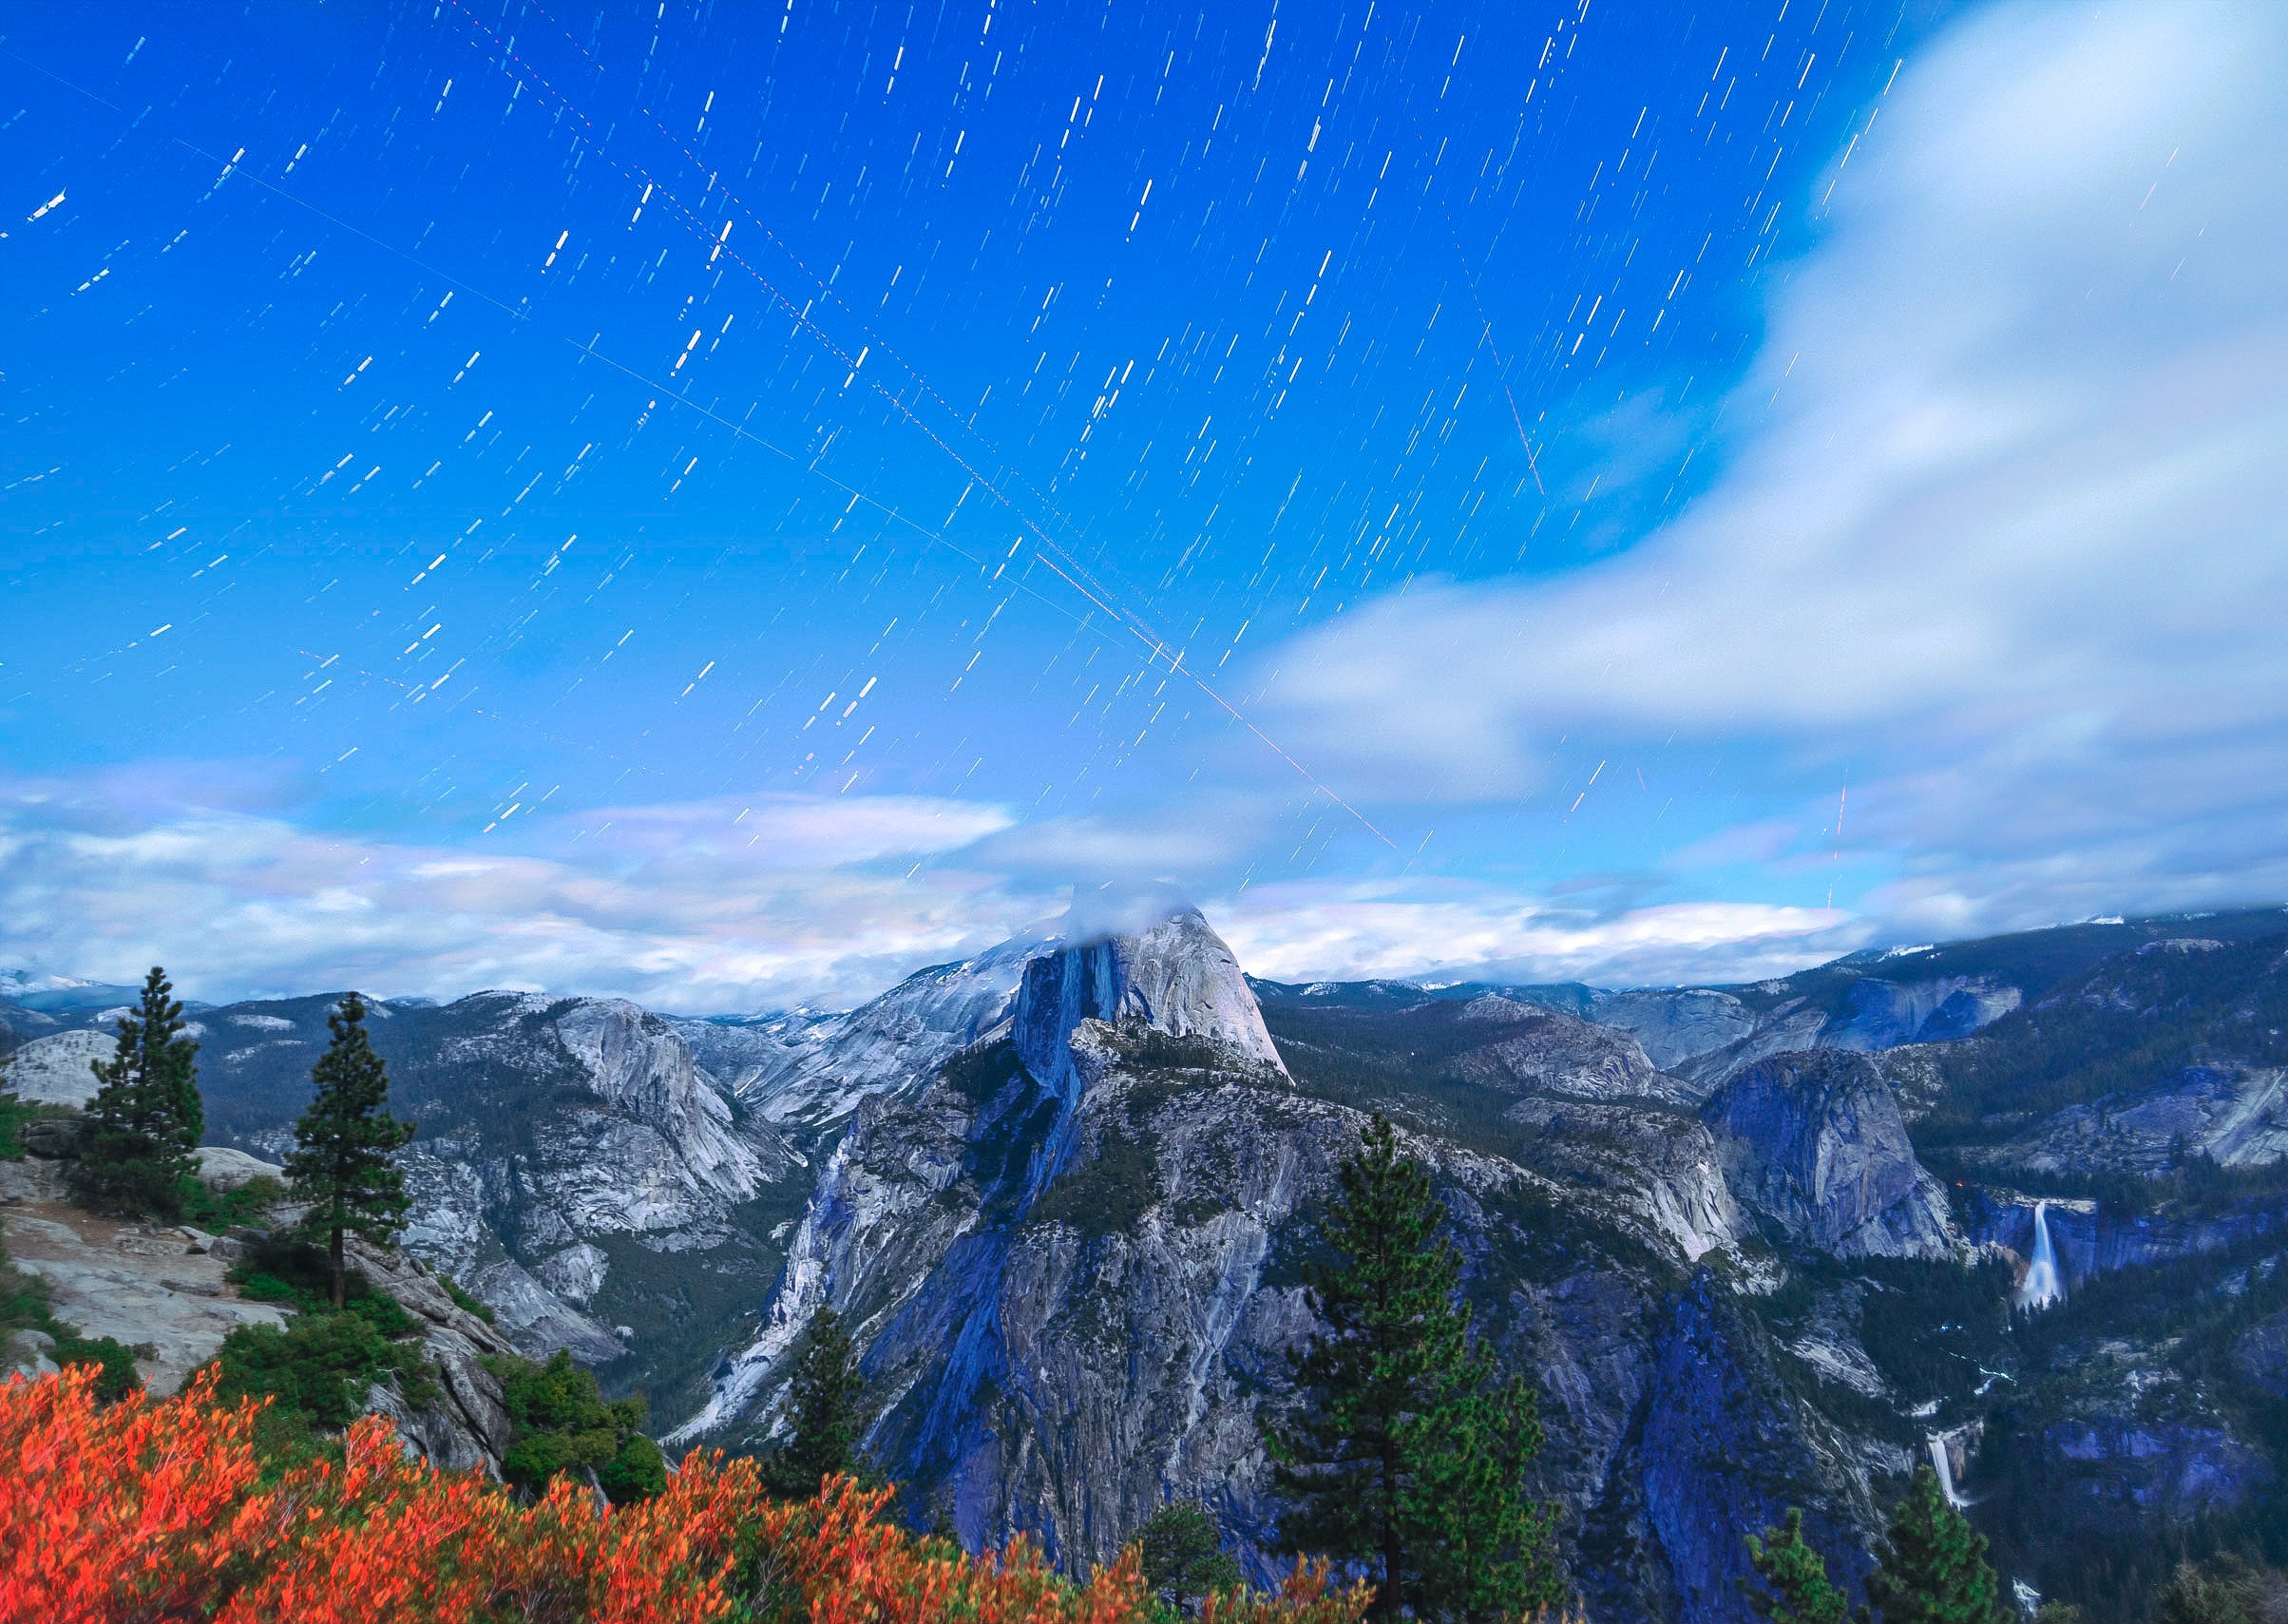 View from Glacier Point on the granite summits in Yosemite Valley on a bright day